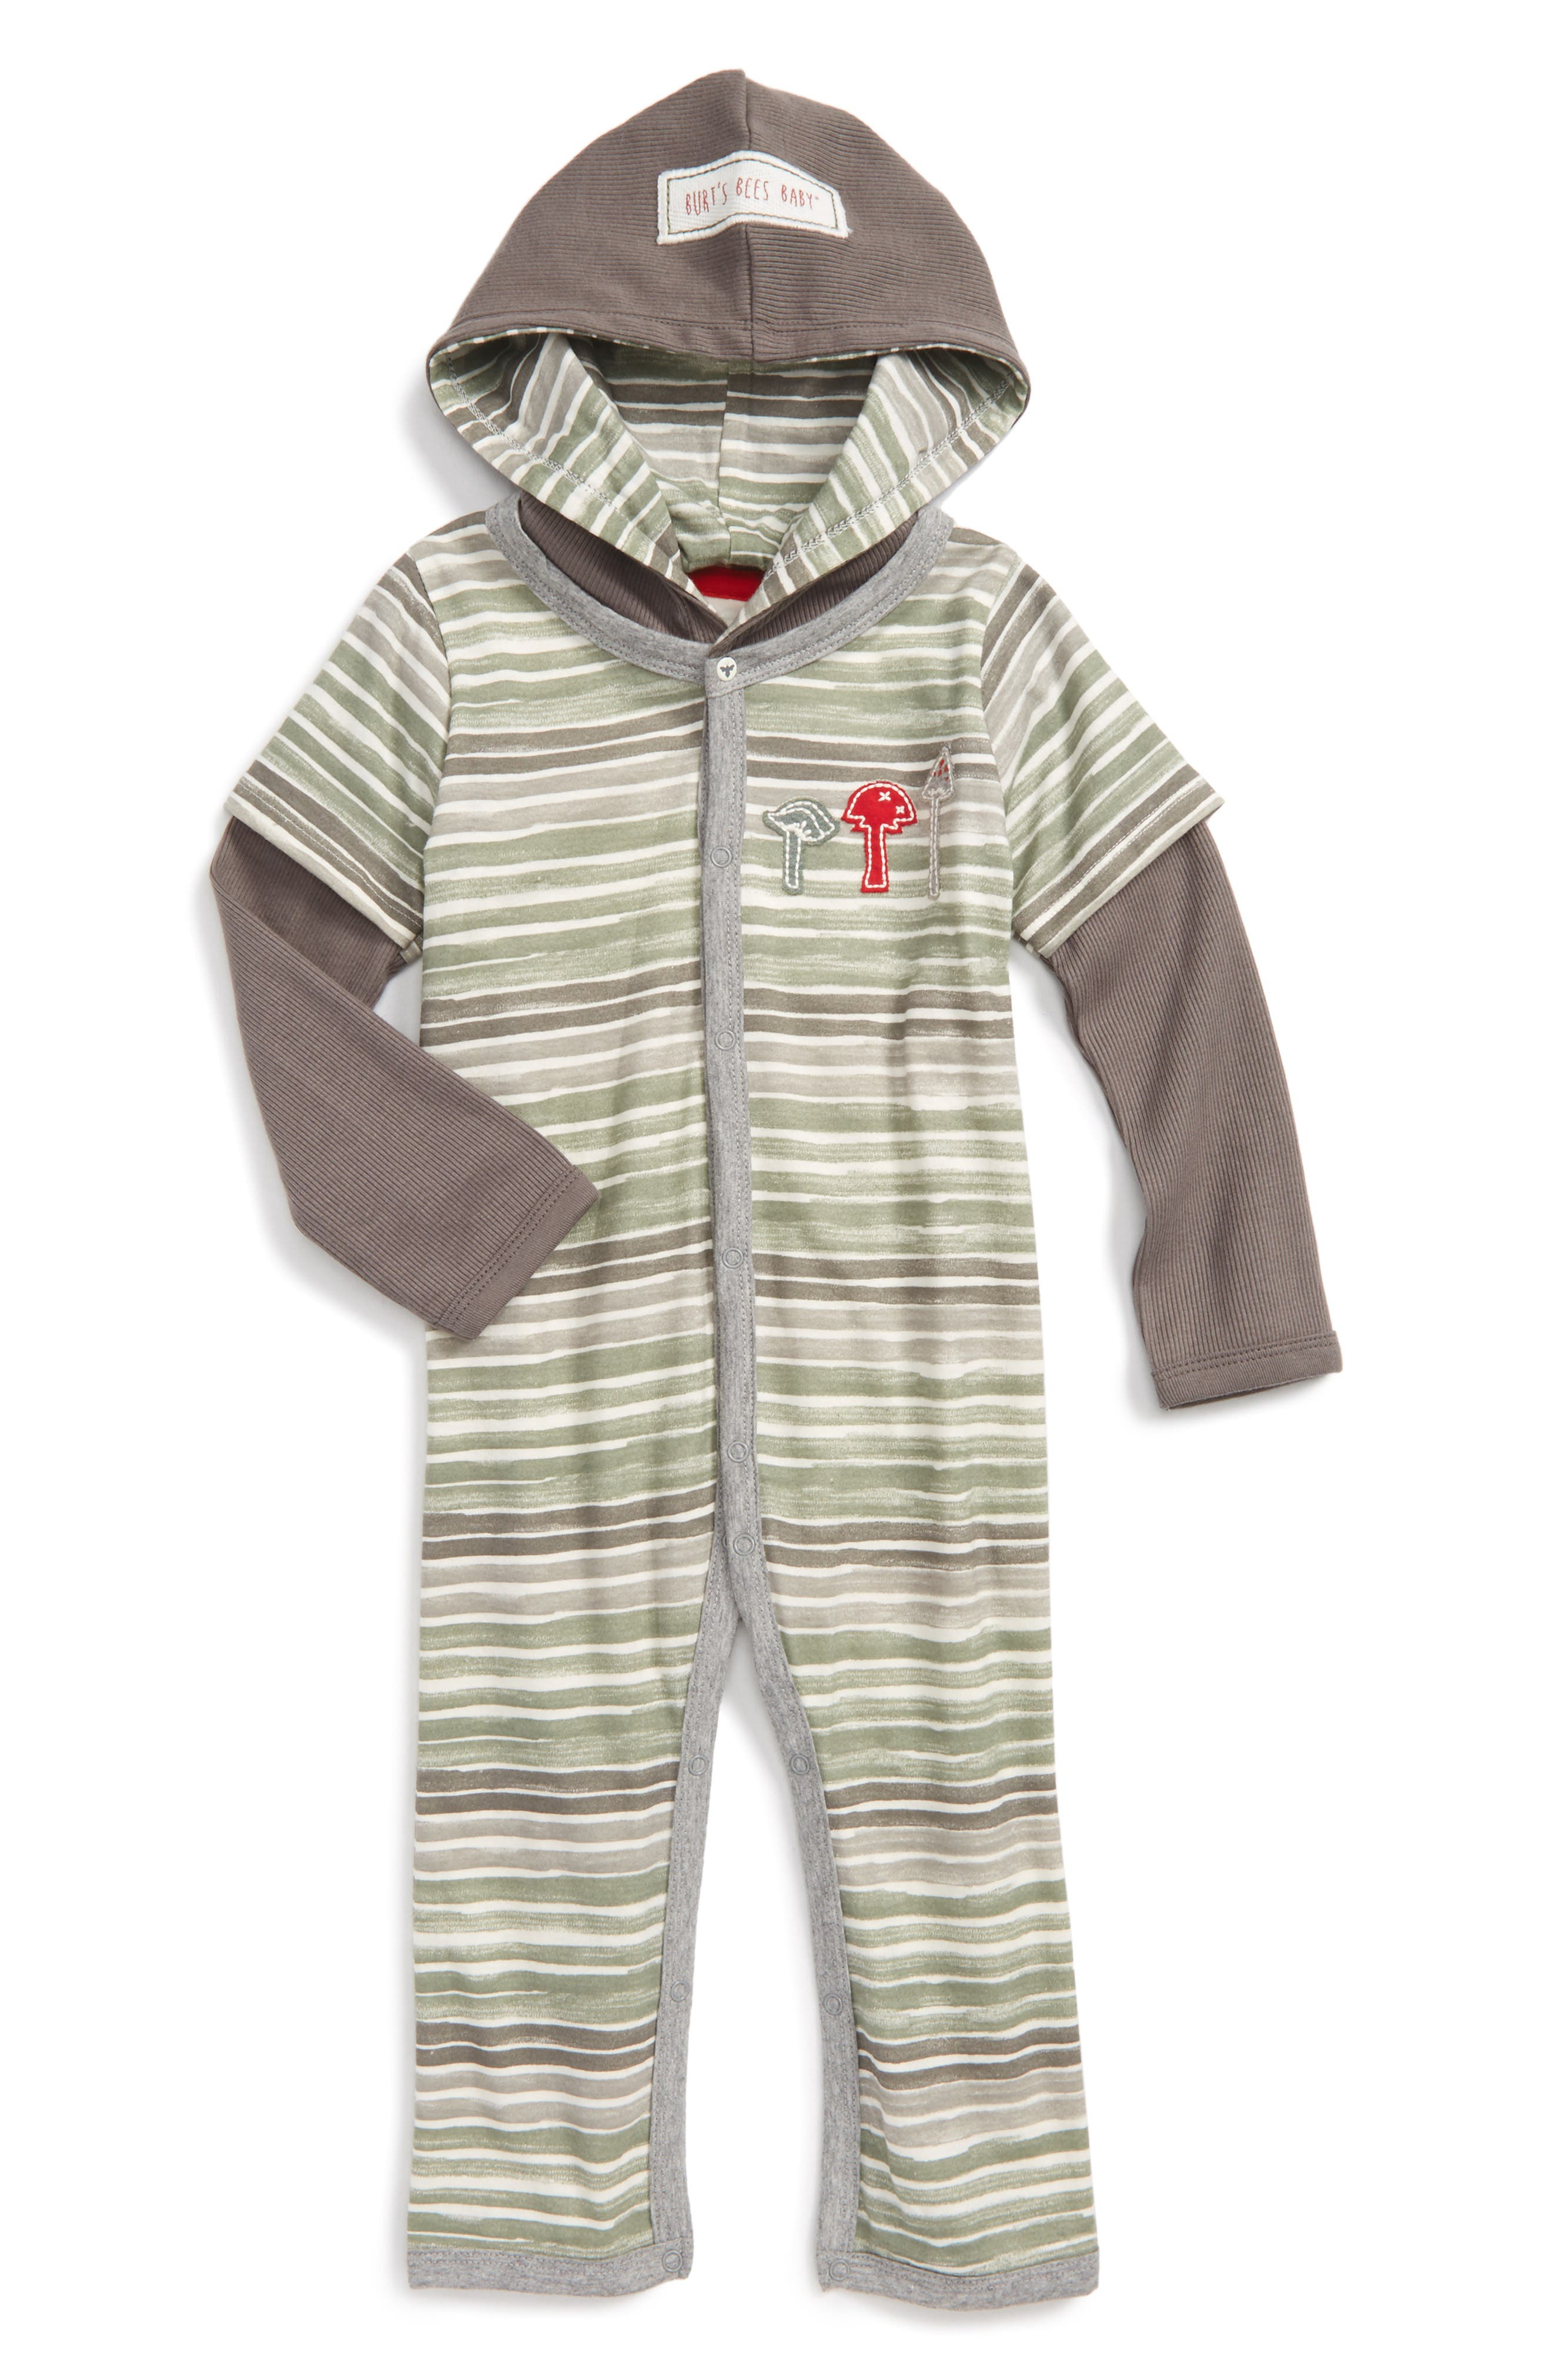 Burt's Bees Baby Organic Cotton Hooded Romper (Baby Boys)